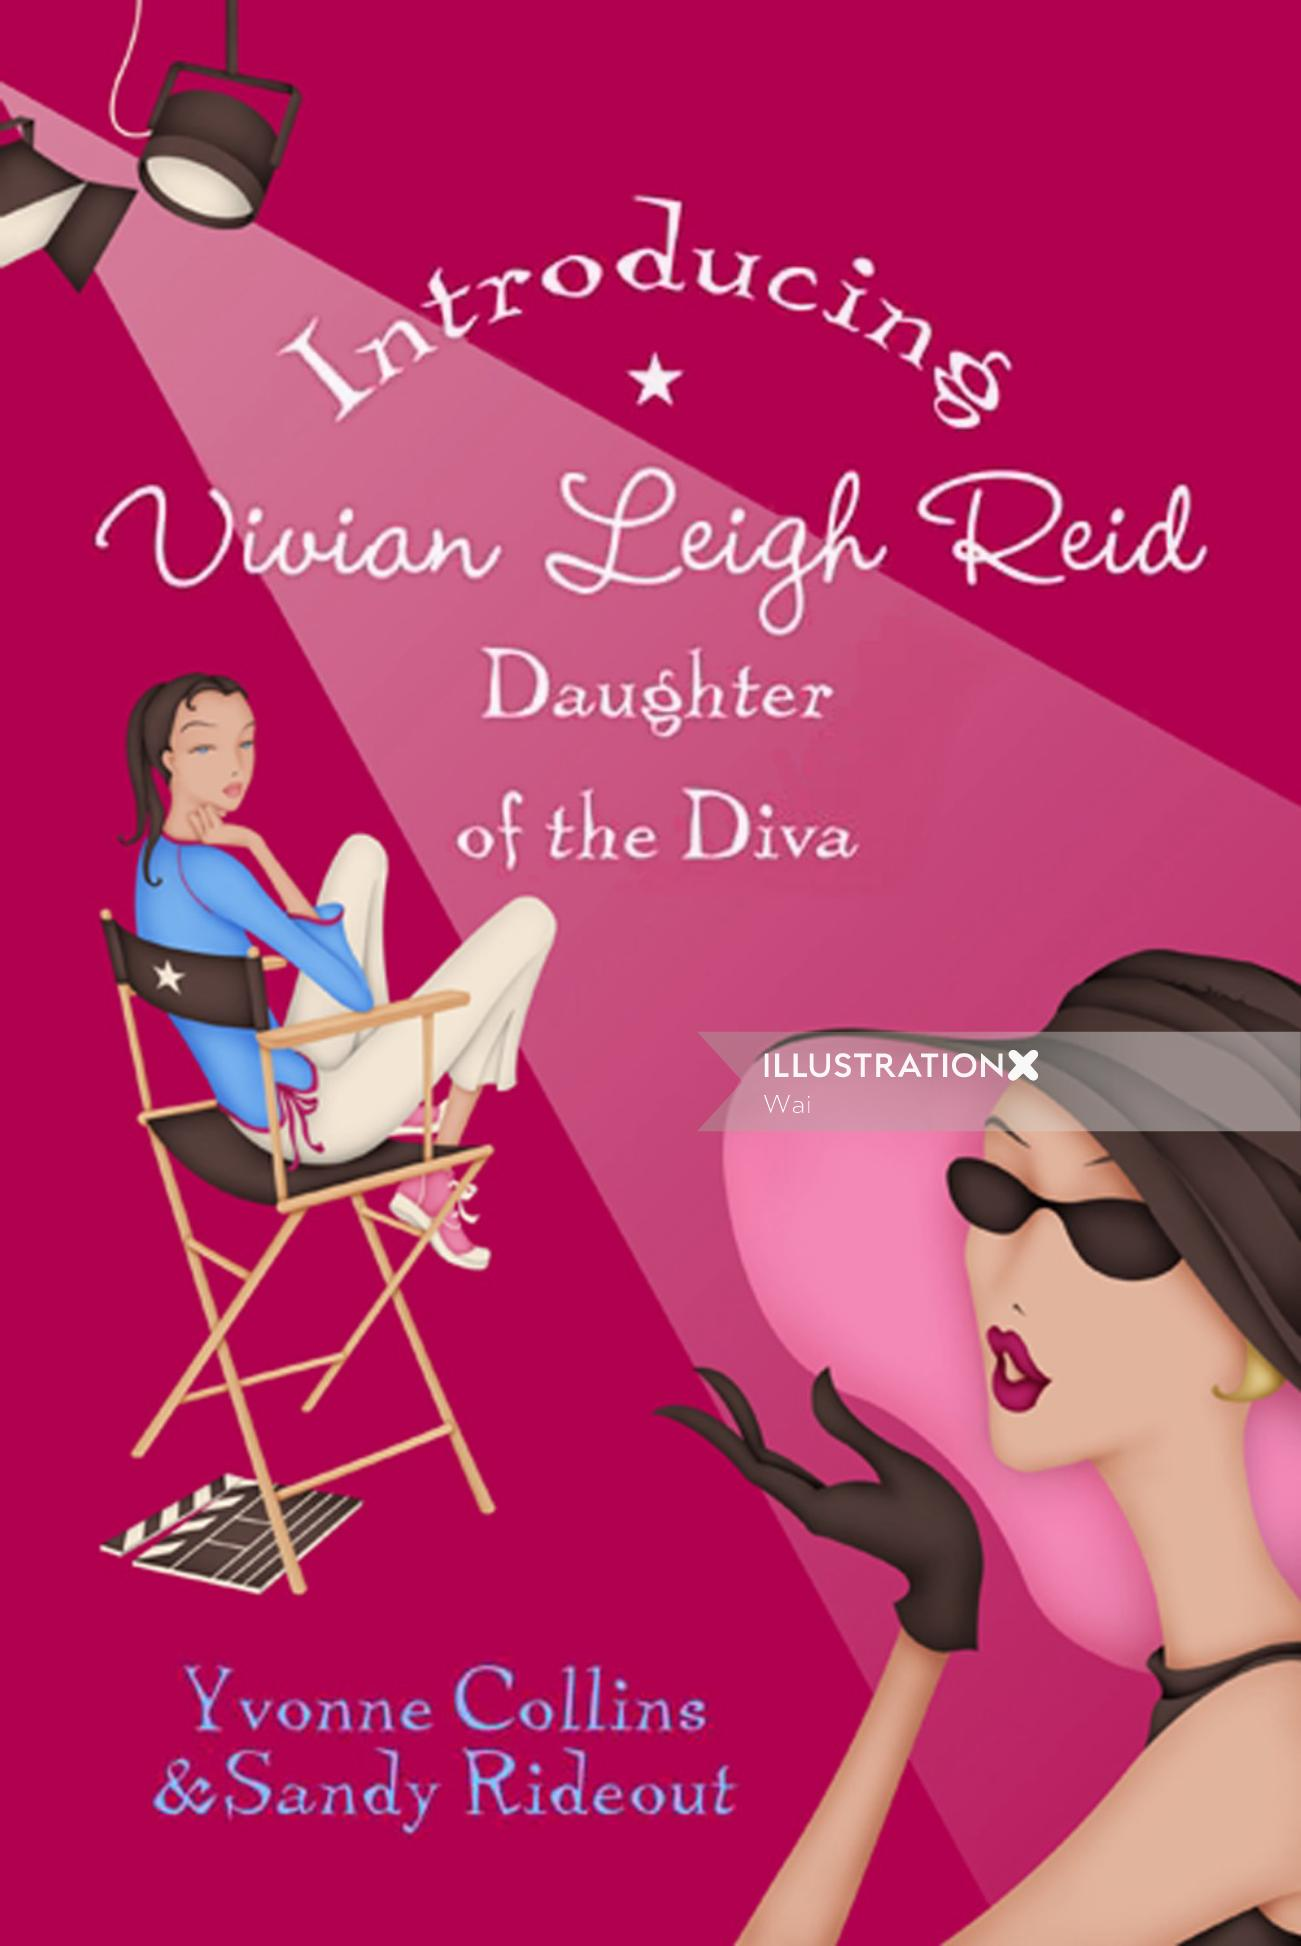 Book Cover, Daughter of a Diva series, girl sitting on director's chair, spotlight, film clapper, fi